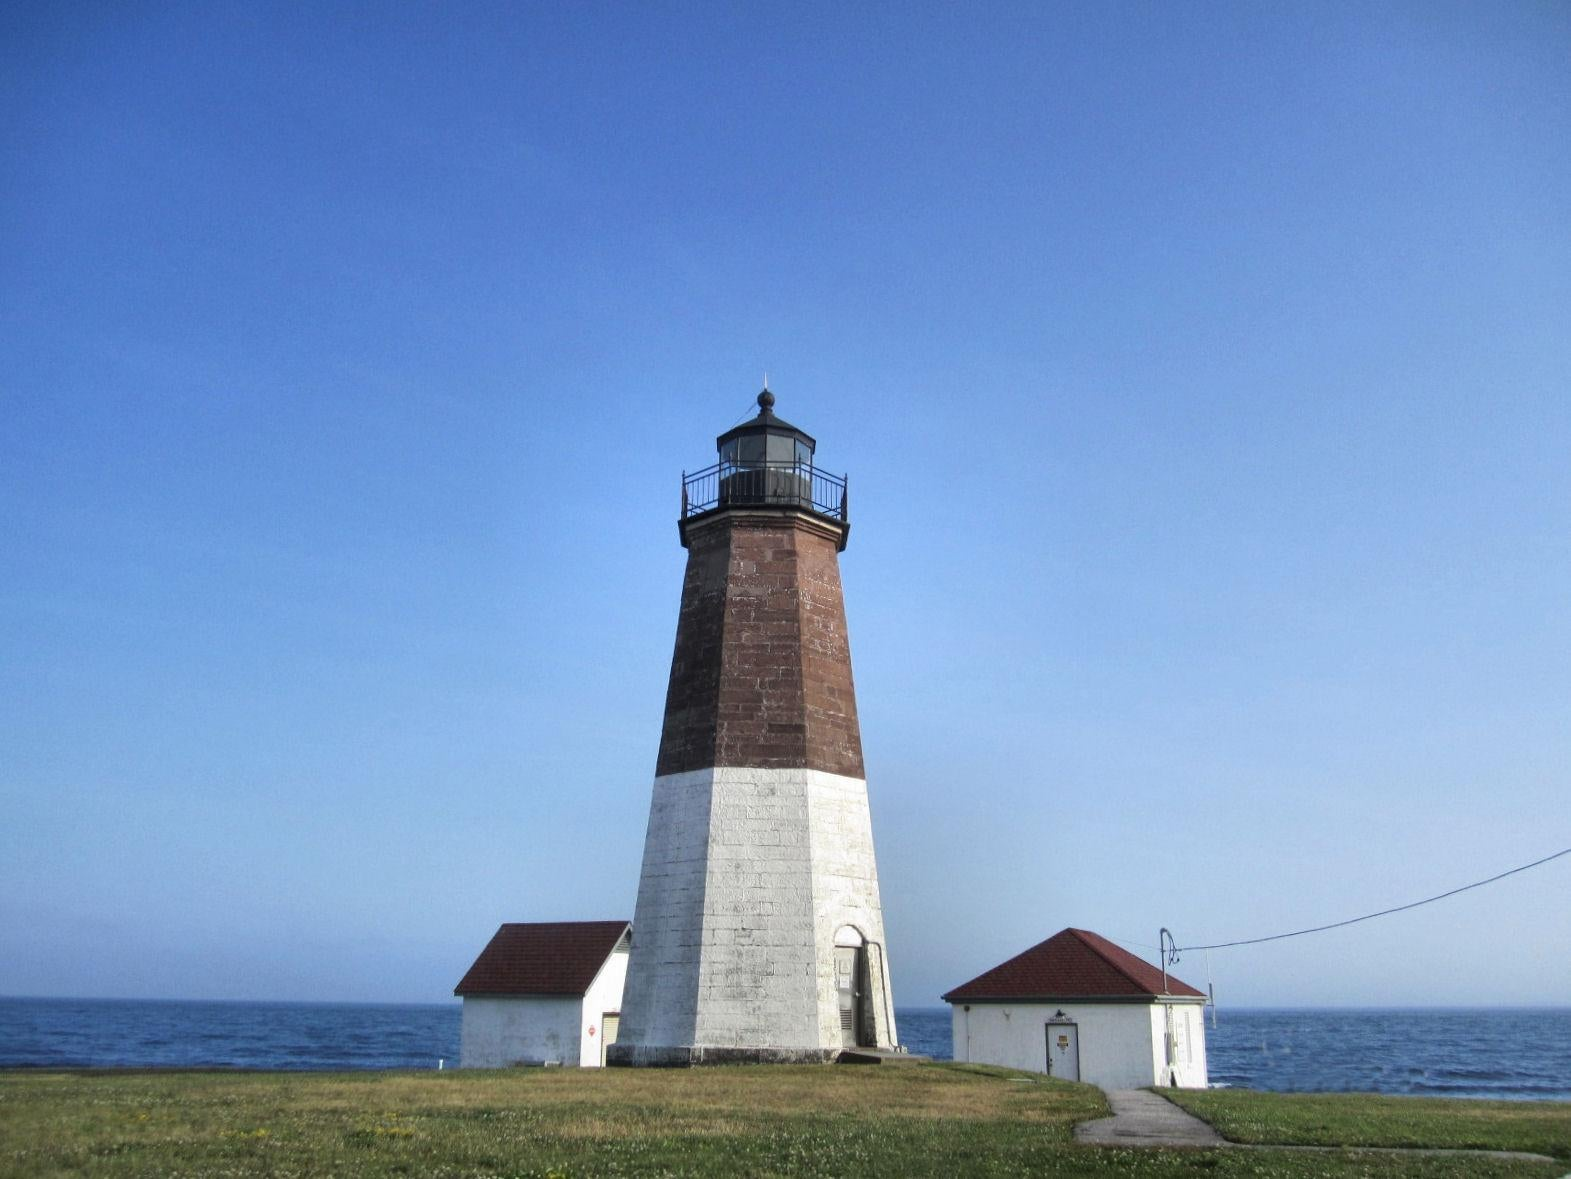 Lighthouse in Rhode Island